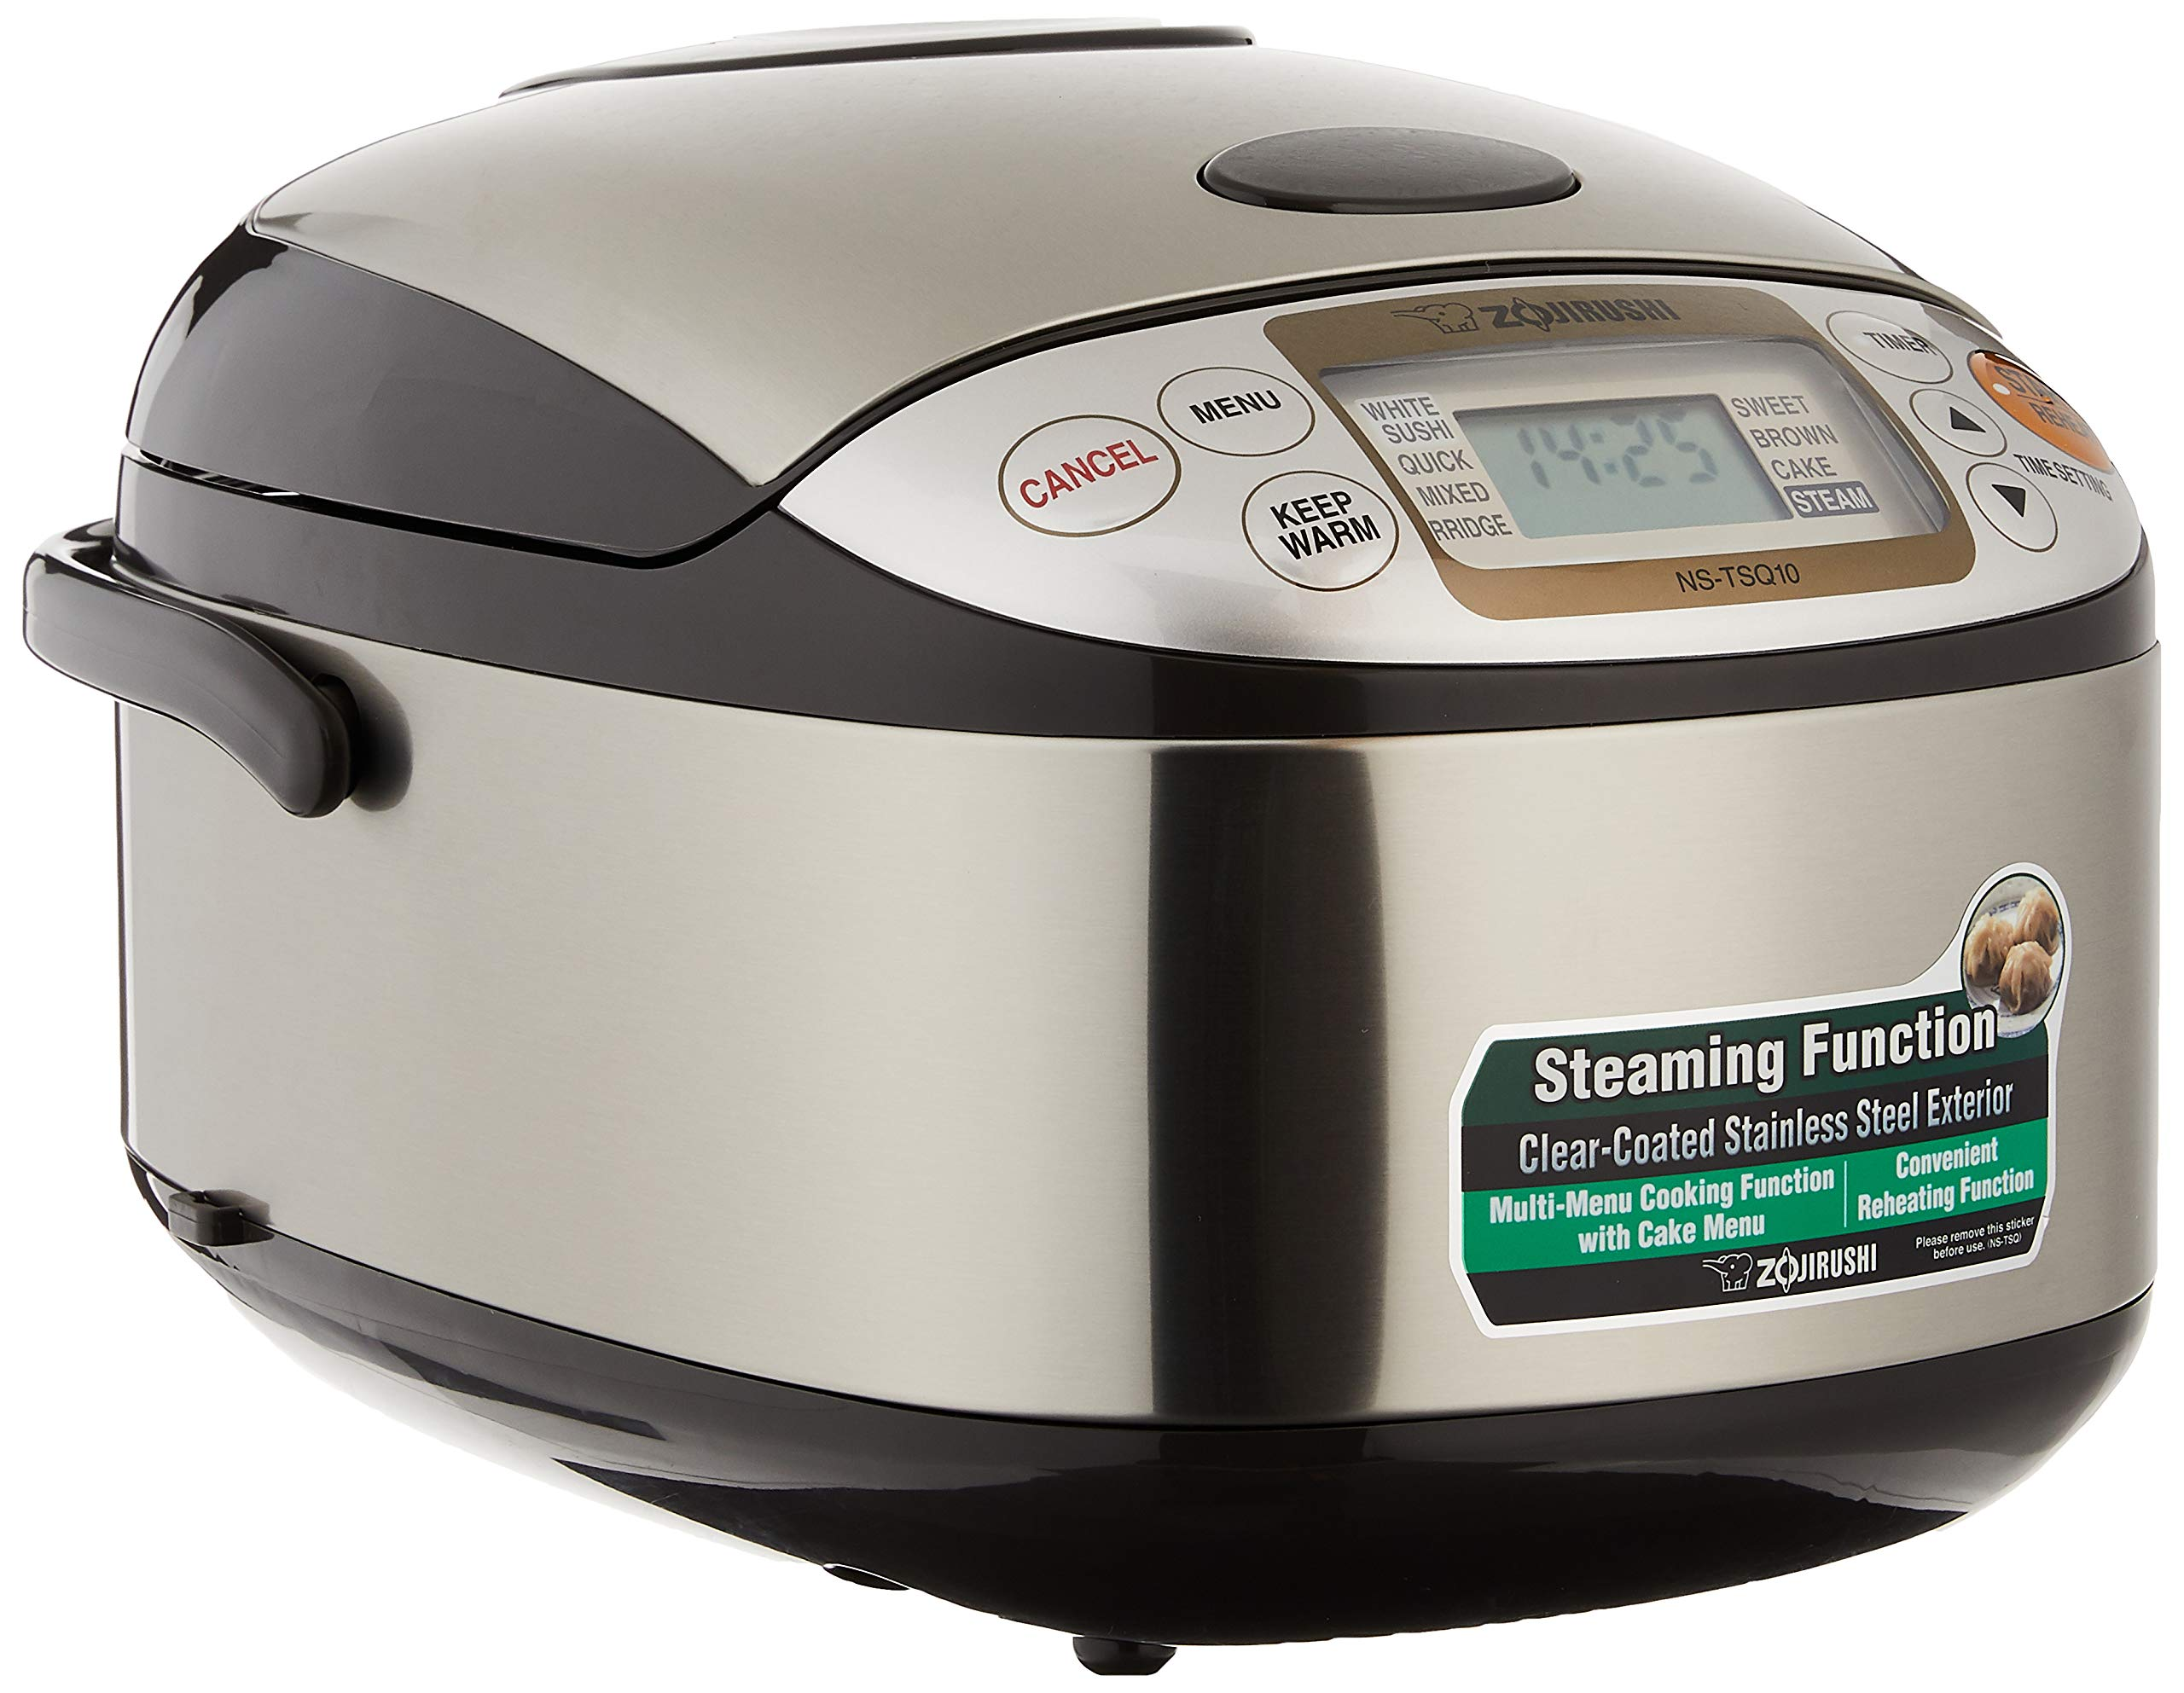 ZOJIRUSHI Rice Cooker NS-TSQ10 Stainless Steel Brown, 220-230V (Stainless Steel Brown)